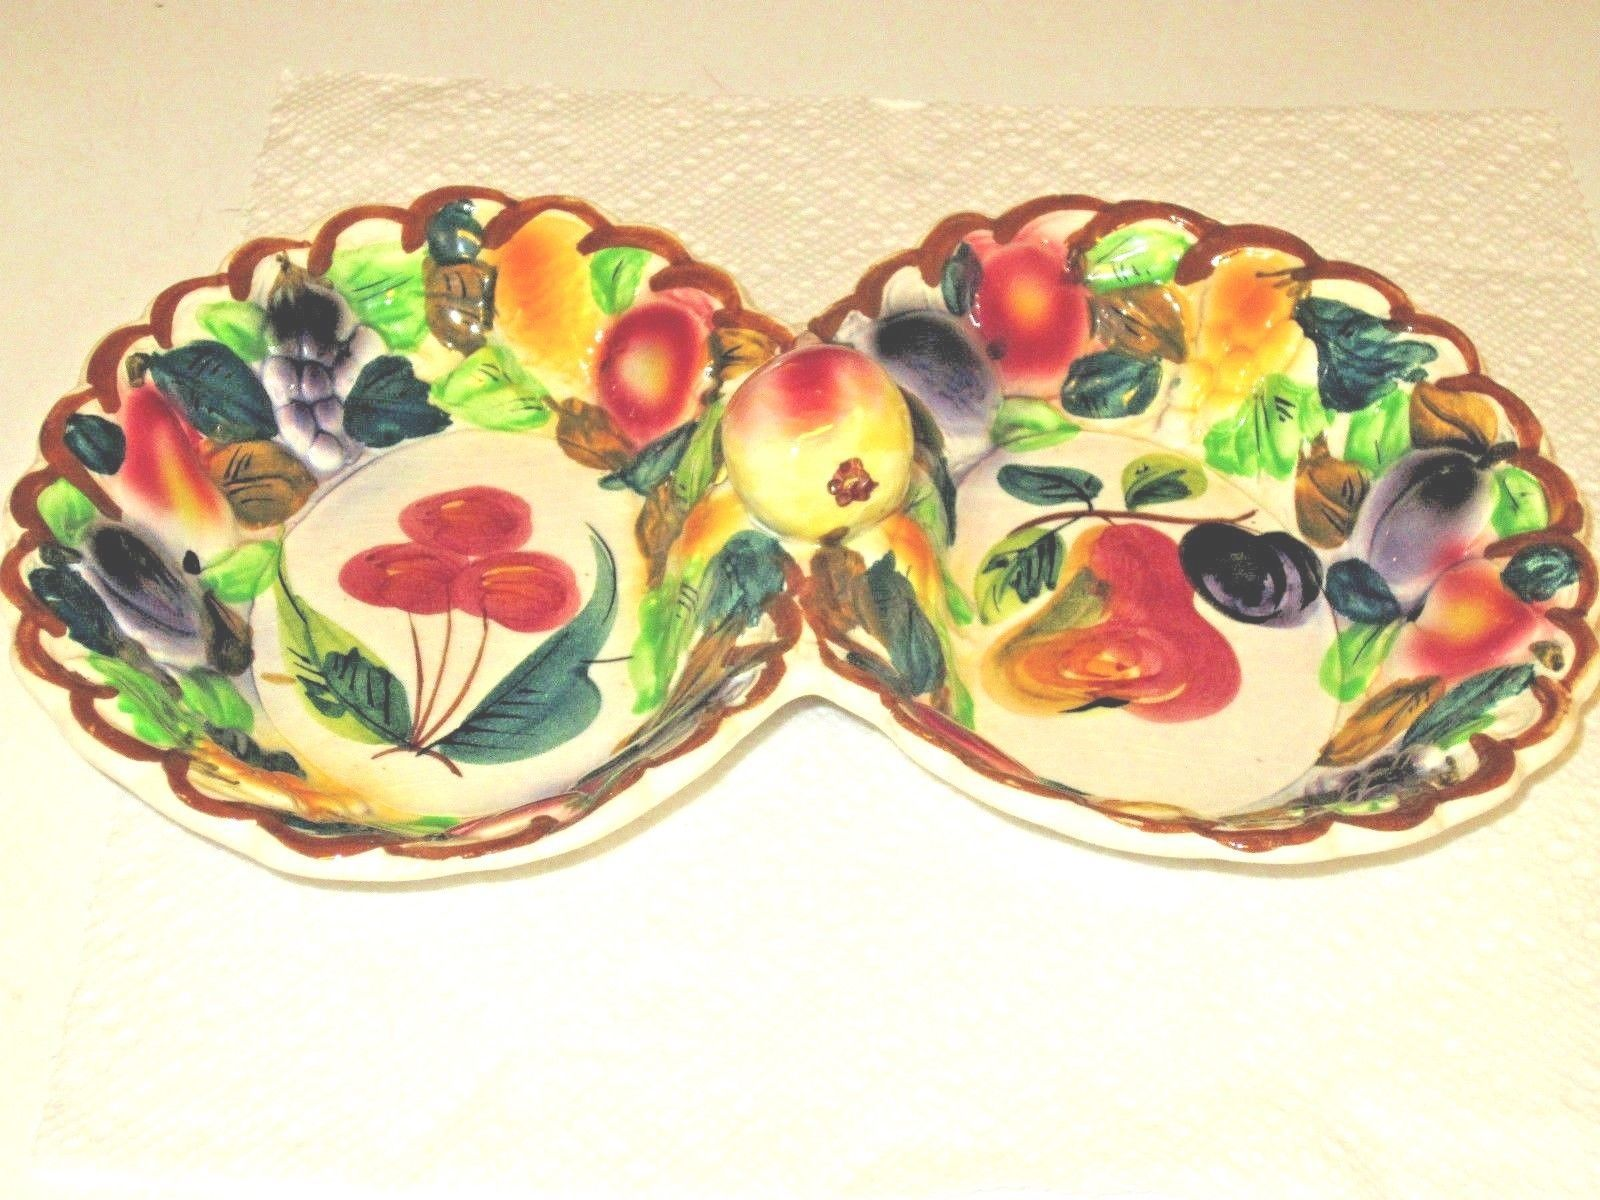 f59f29b843e Italy Pottey Divided Serving Dish Fruit and 50 similar items